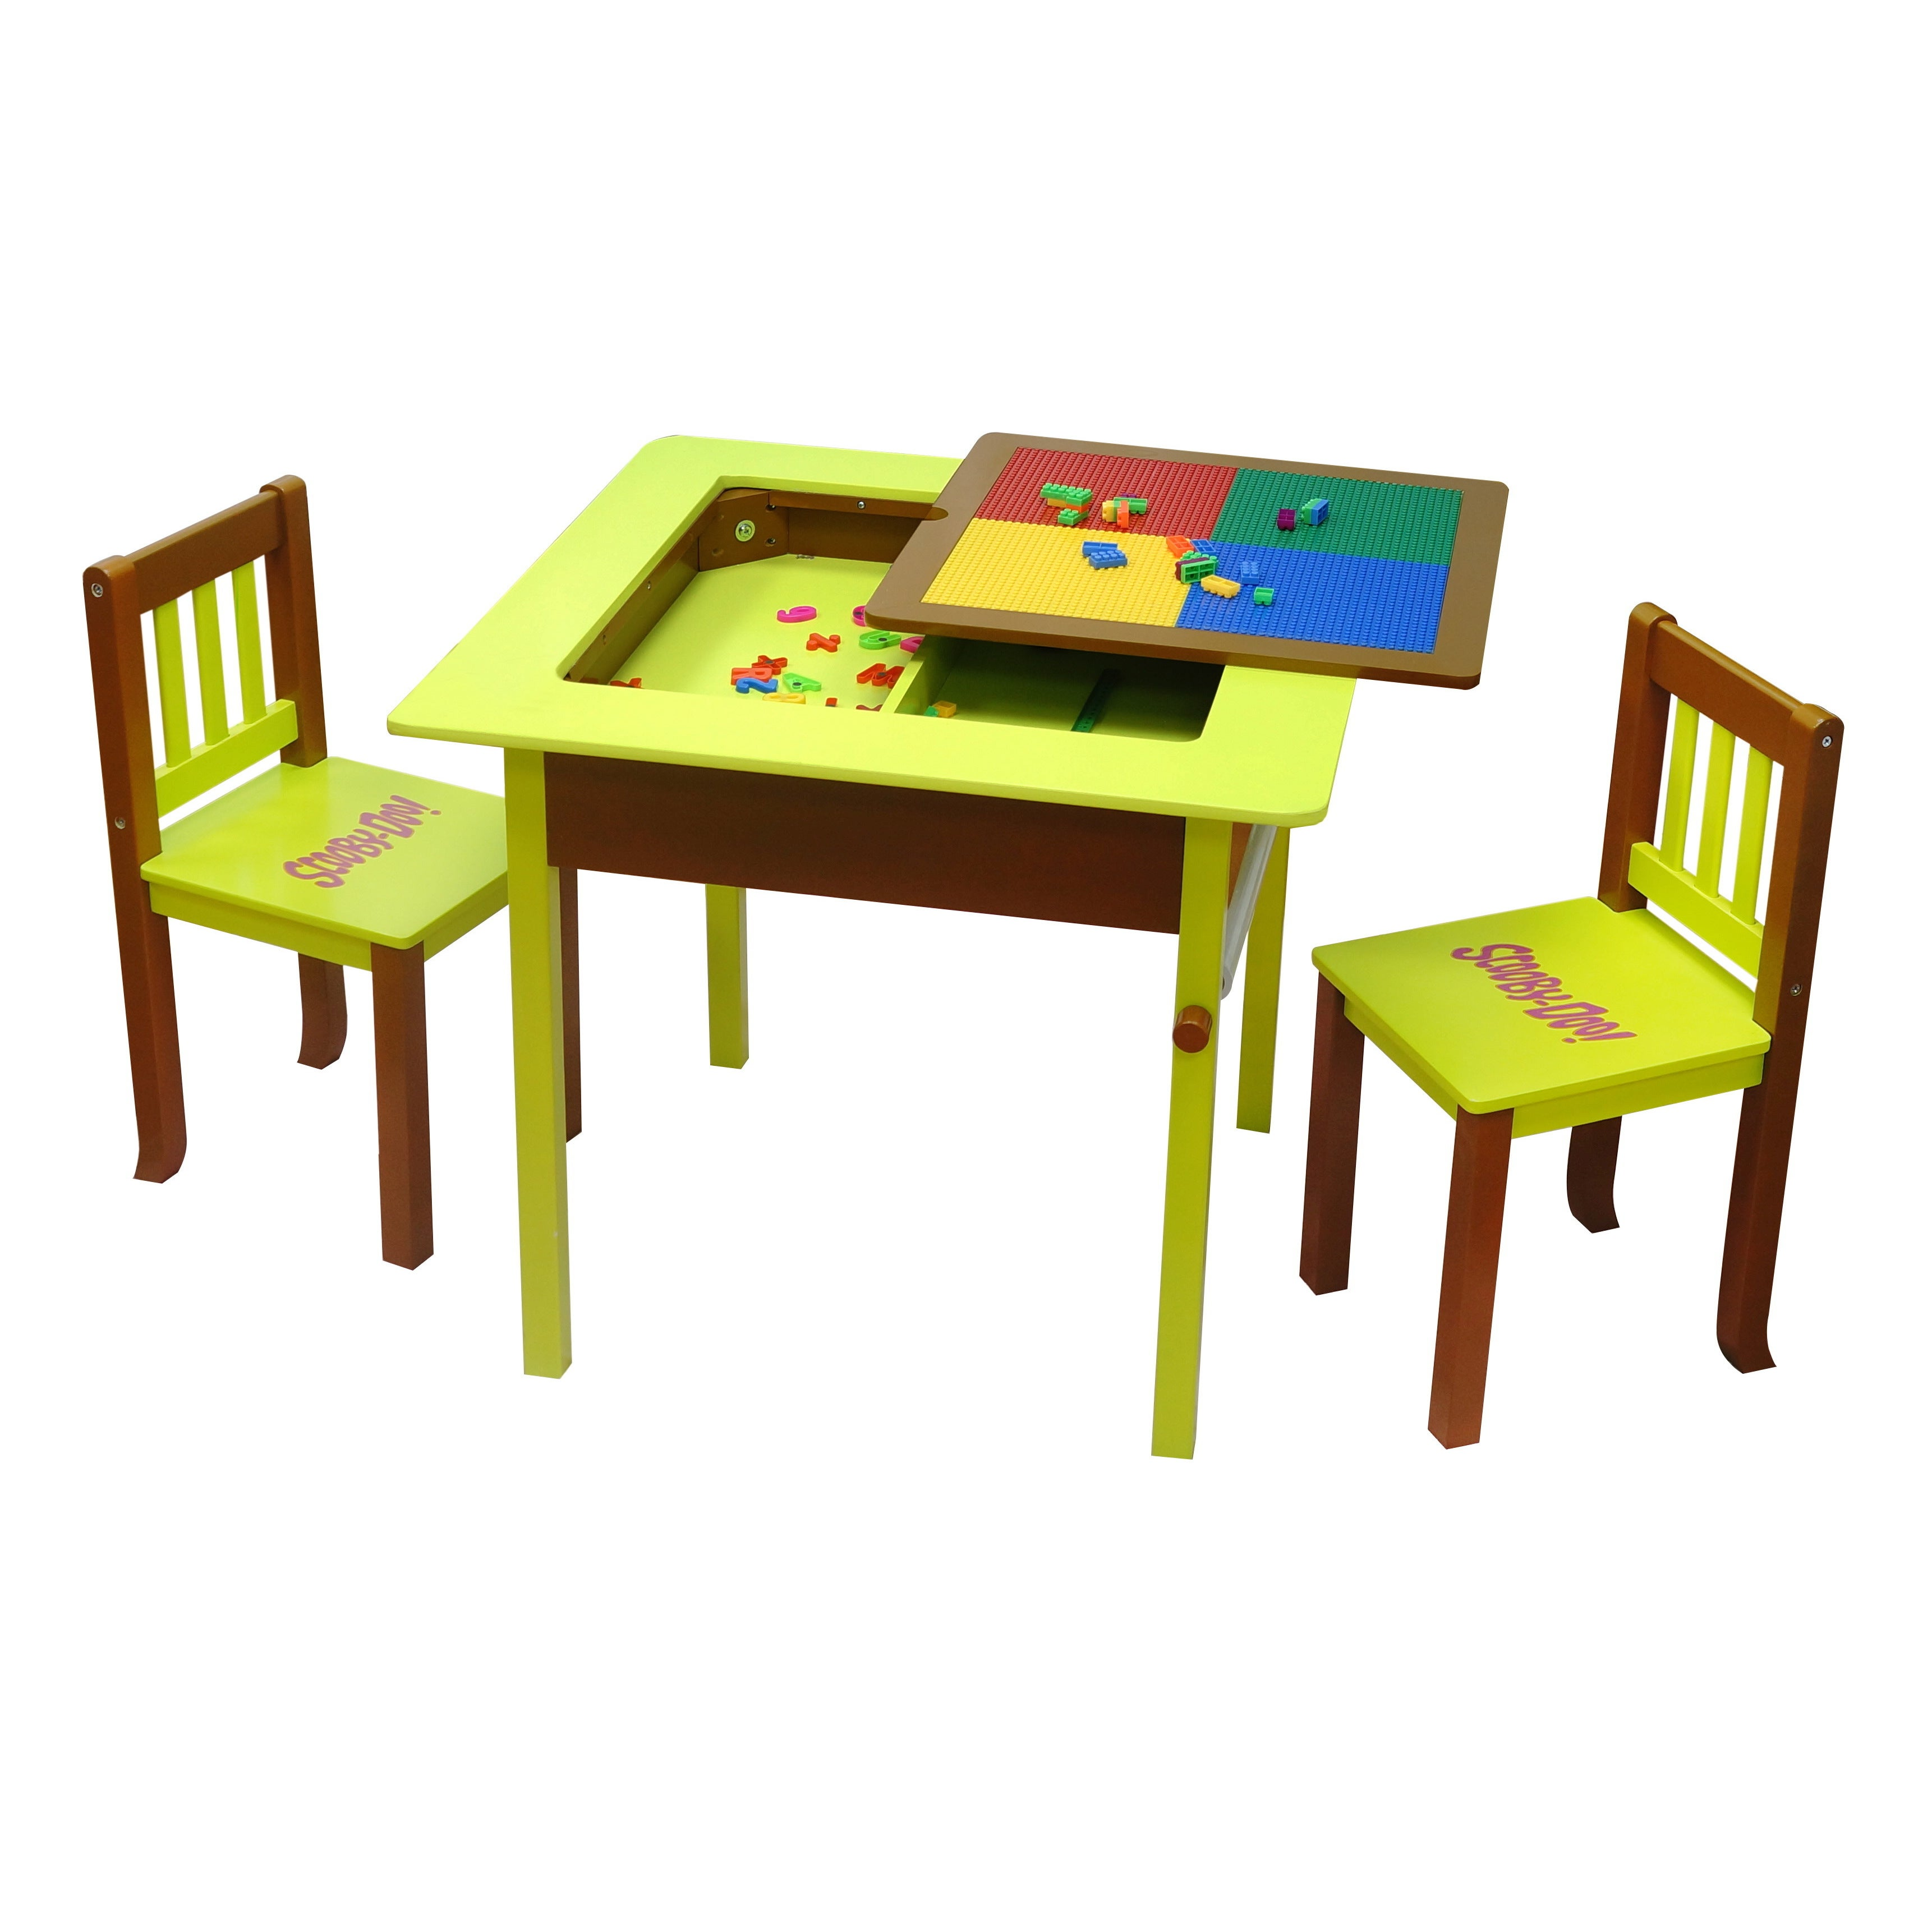 O'Kids Scooby Doo Deluxe 4-in-1 Flip Top Table and Chairs...